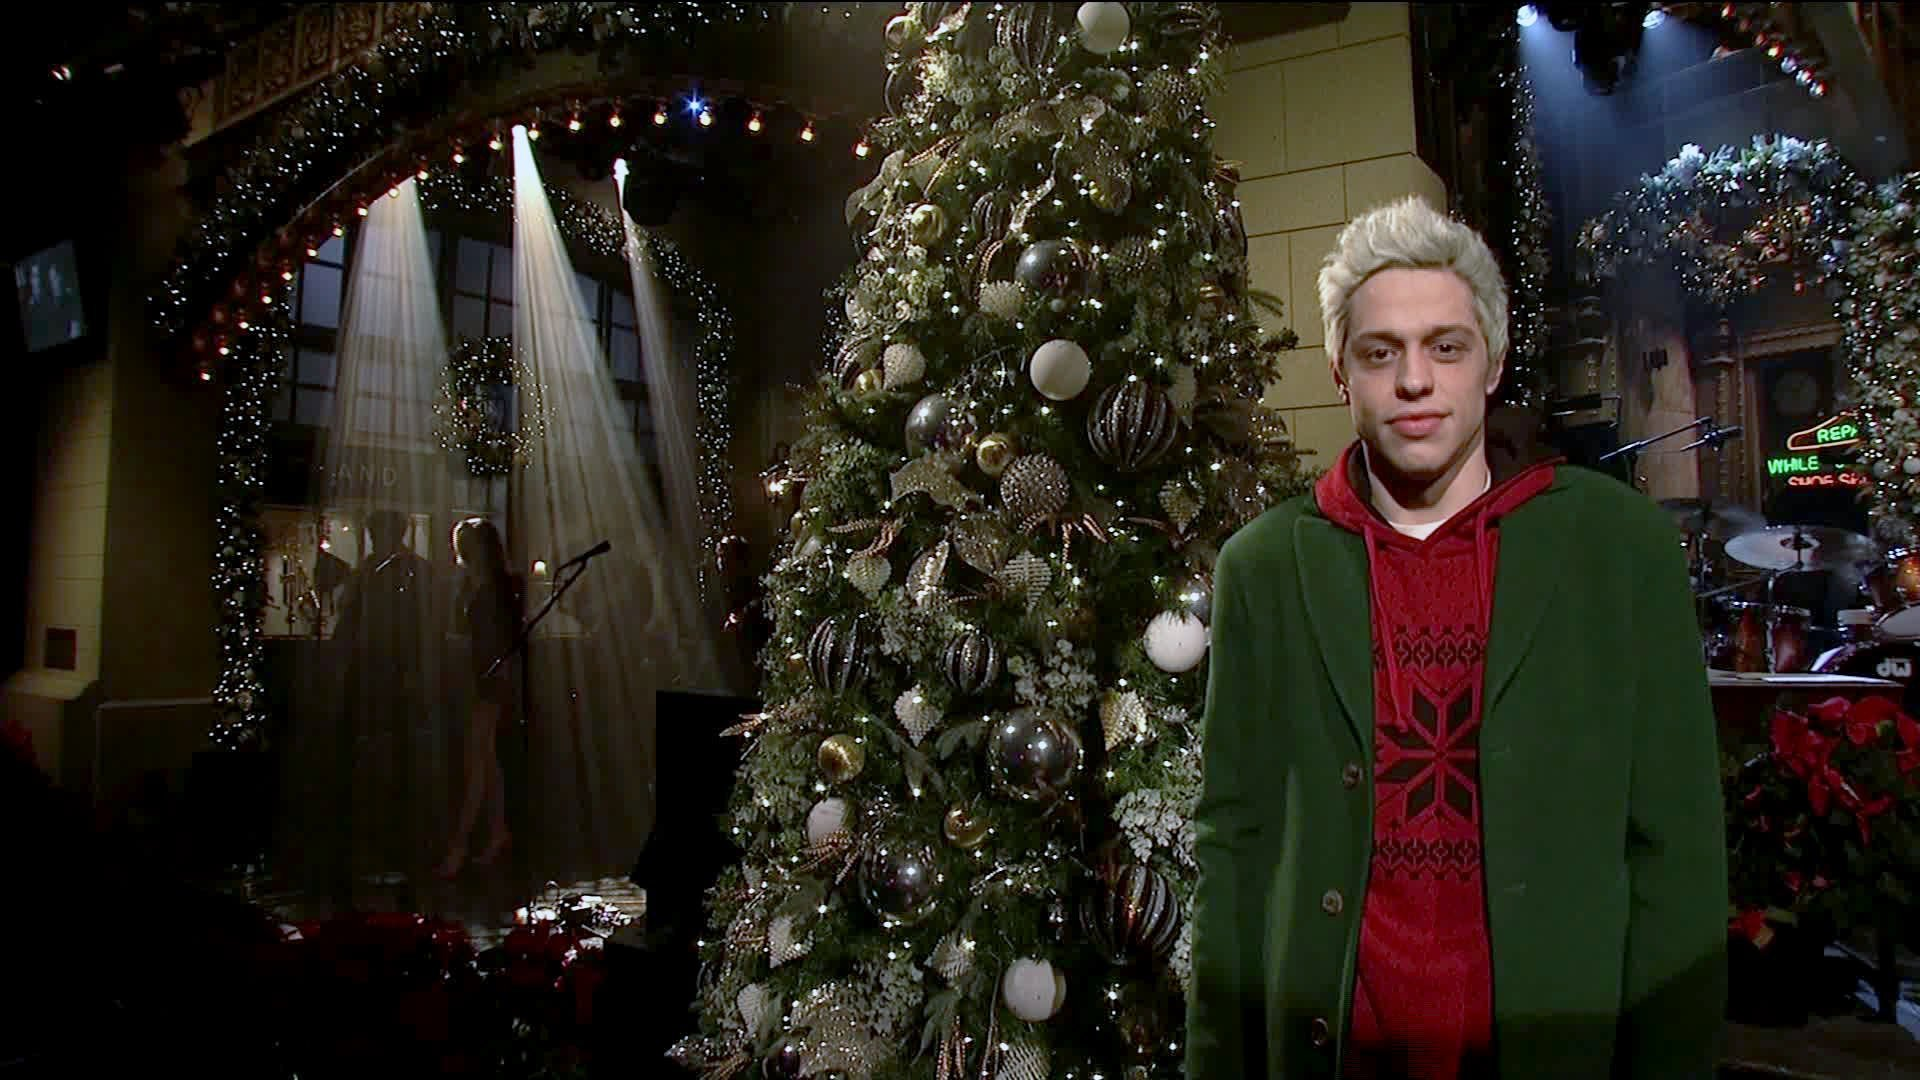 Davidson on the December 15 episode of Saturday Night Live. (Credit: NBC/Broadway Video via CNN Wire)